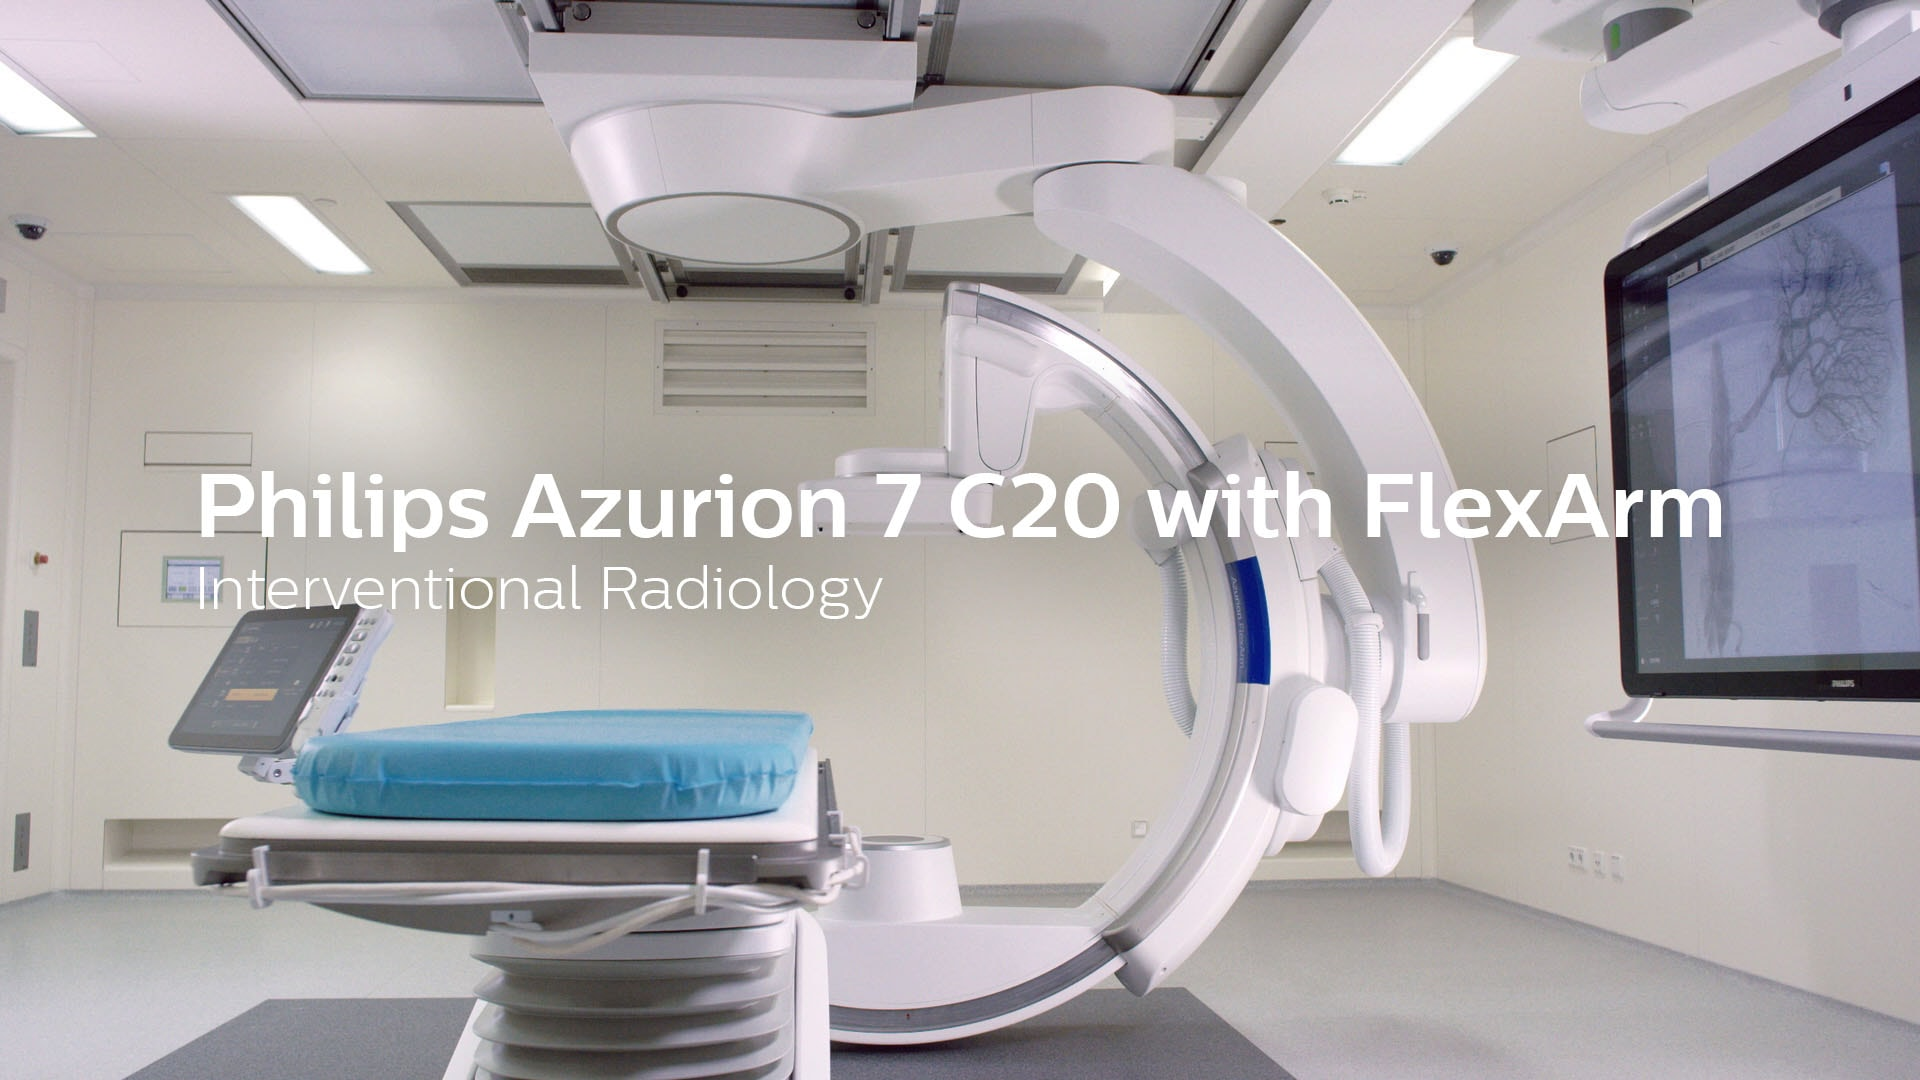 Philips Azurion 7 C20 with Flexarm interventional radiology